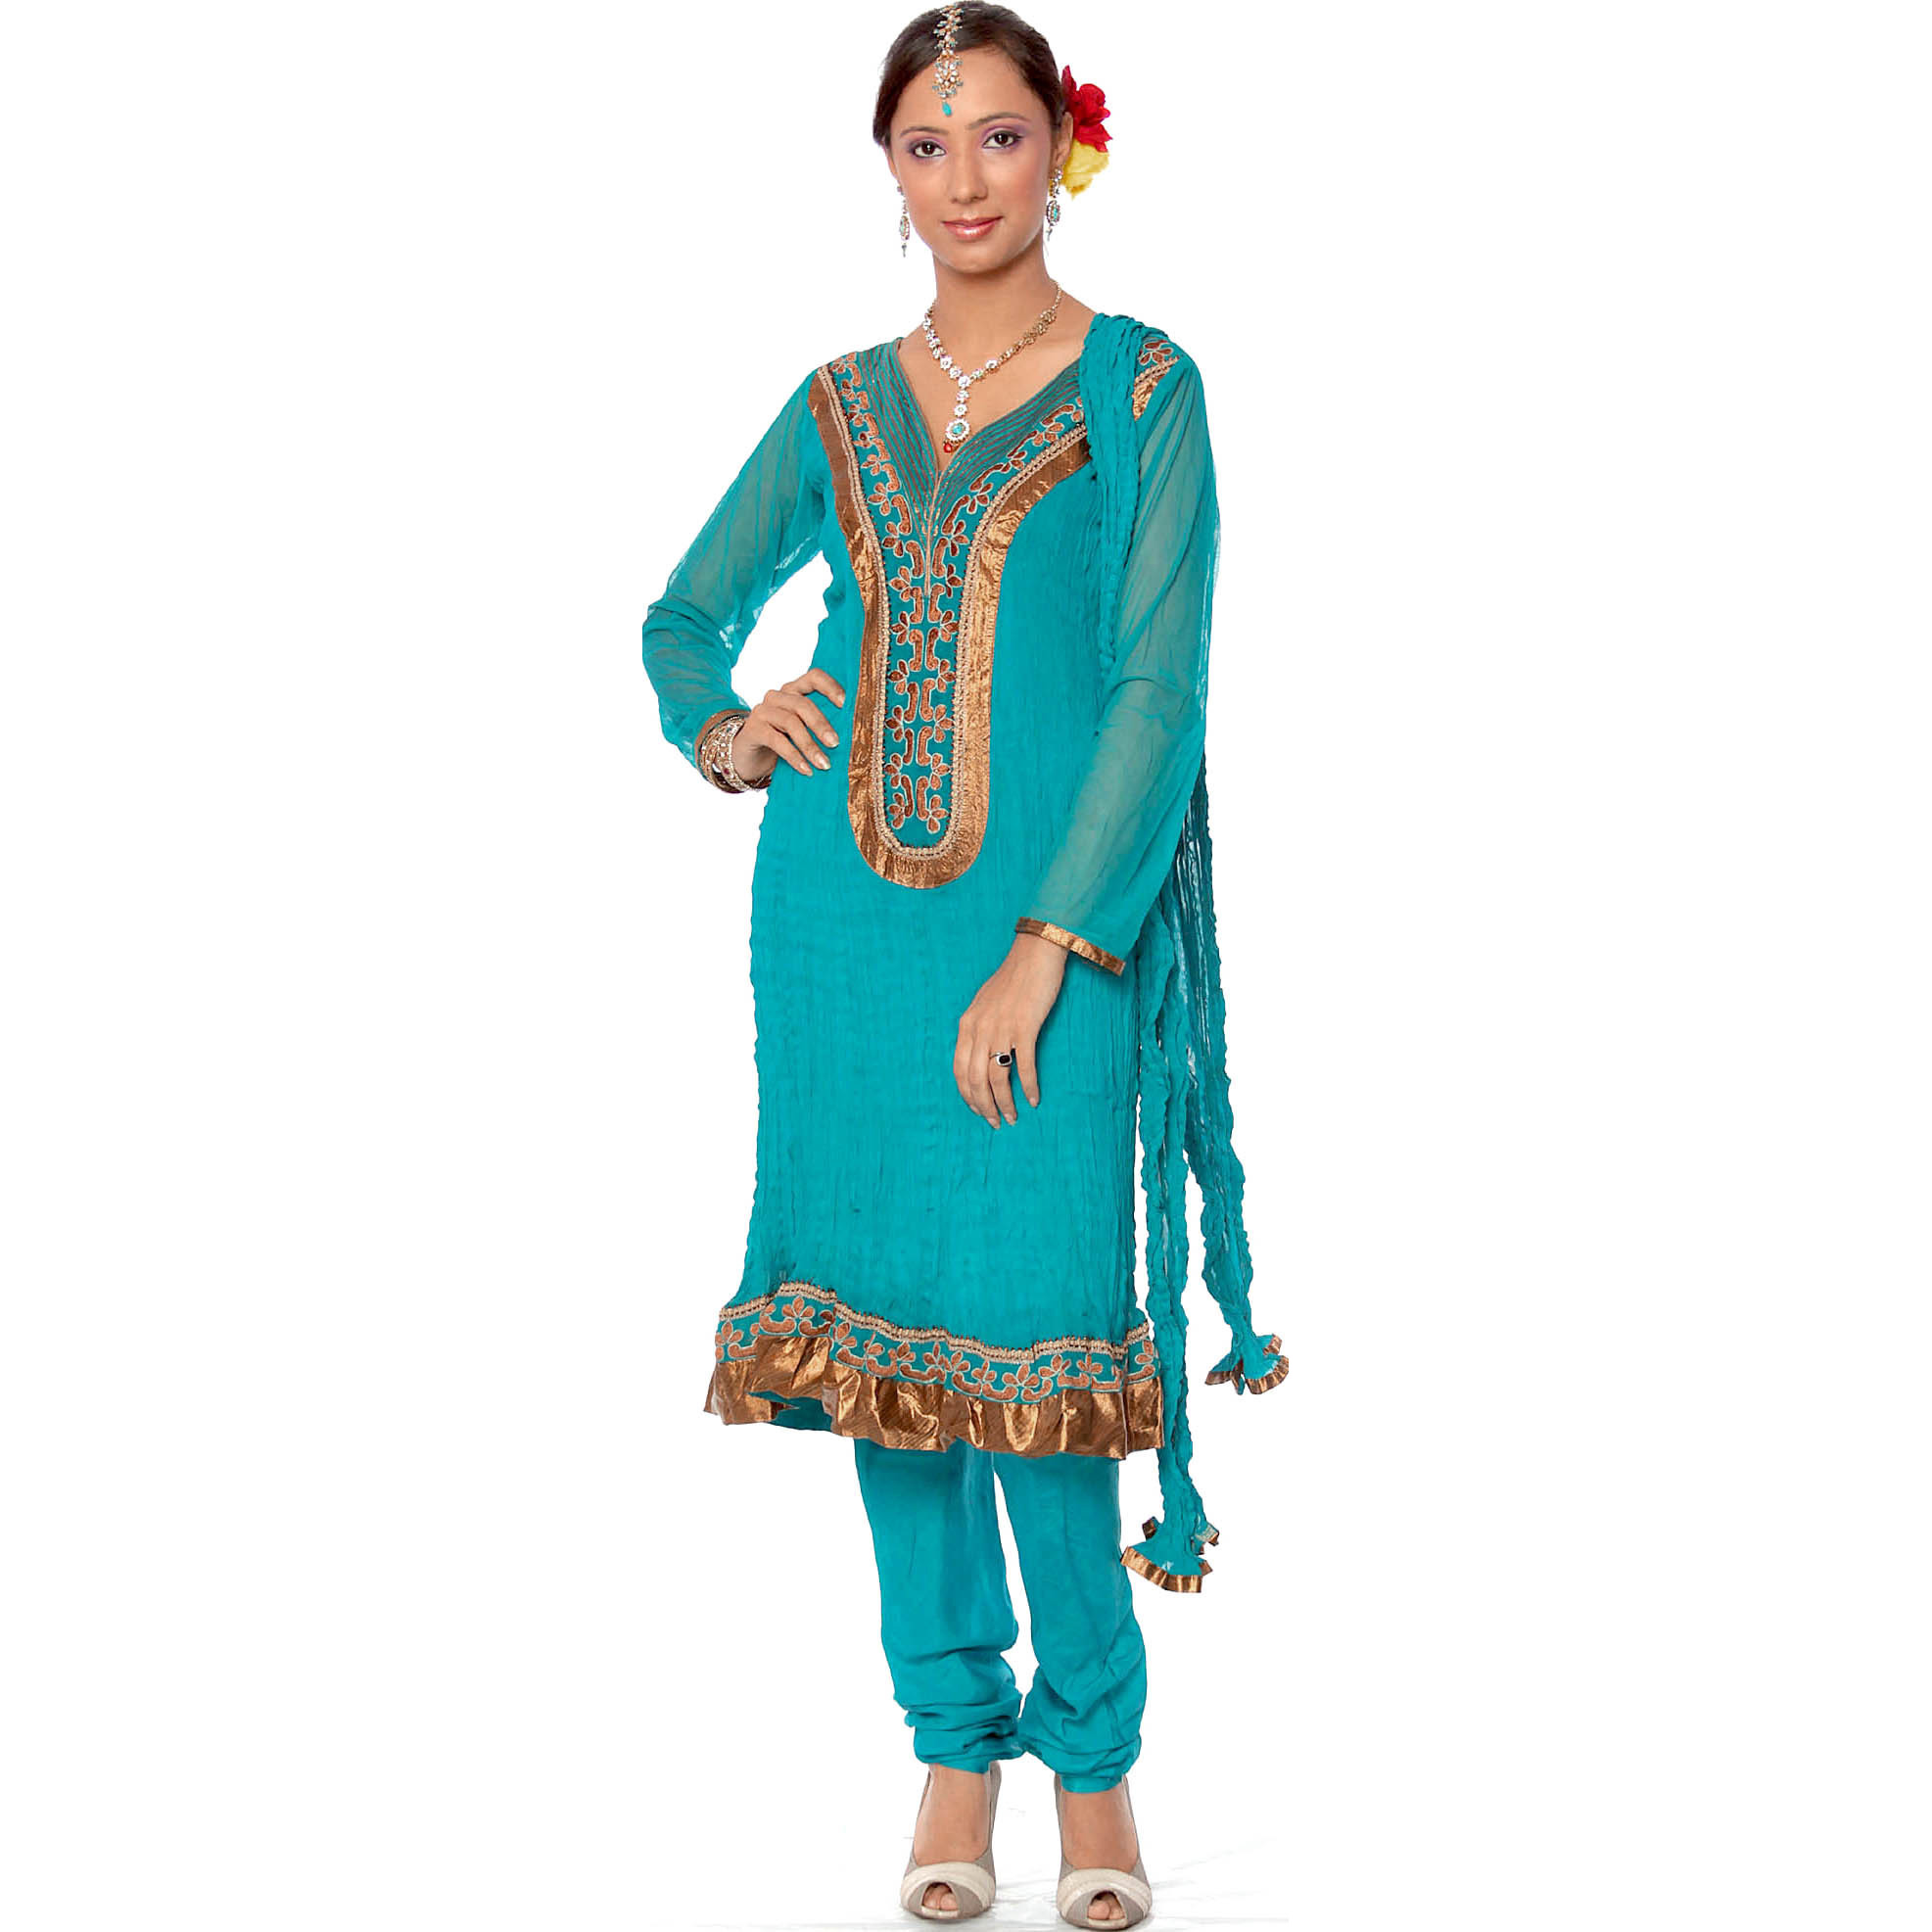 Turquoise Choodidaar Designer Suit with Patchwork